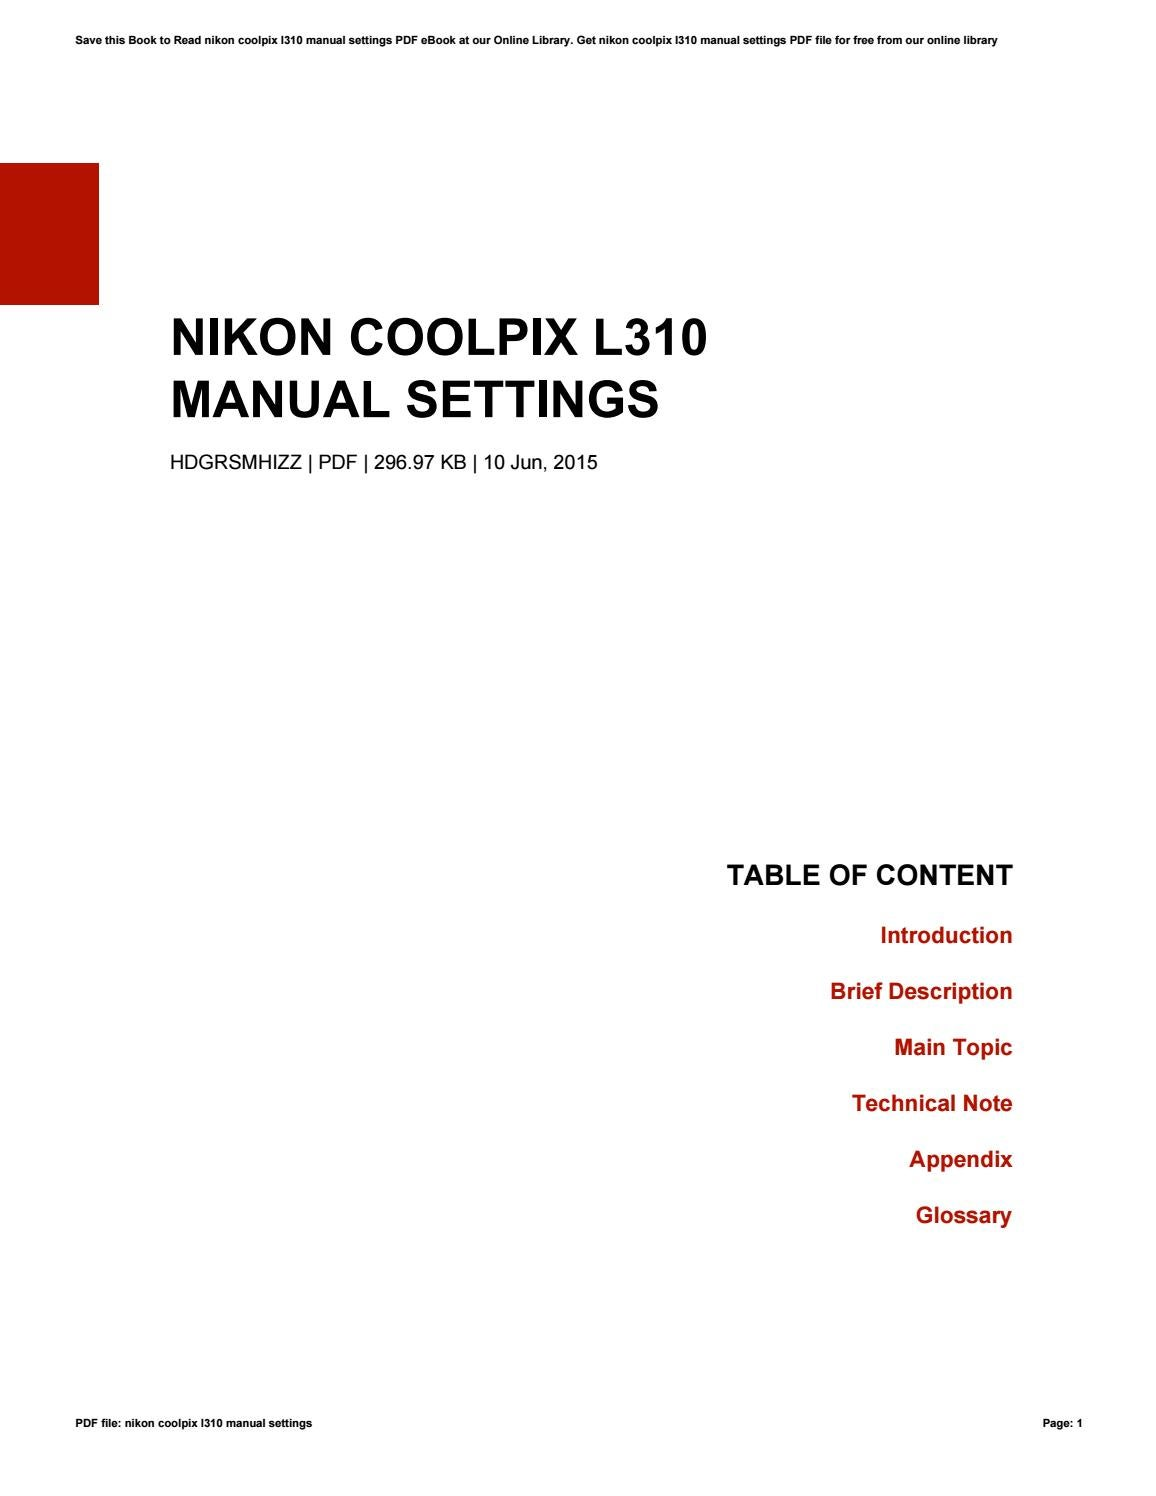 Nikon Manual Ebook 1998 Citroen Berlingo Wiring Diagram That Includes Nsf Door Lock Array Coolpix L310 Settings By Angelaharris4080 Issuu Rh